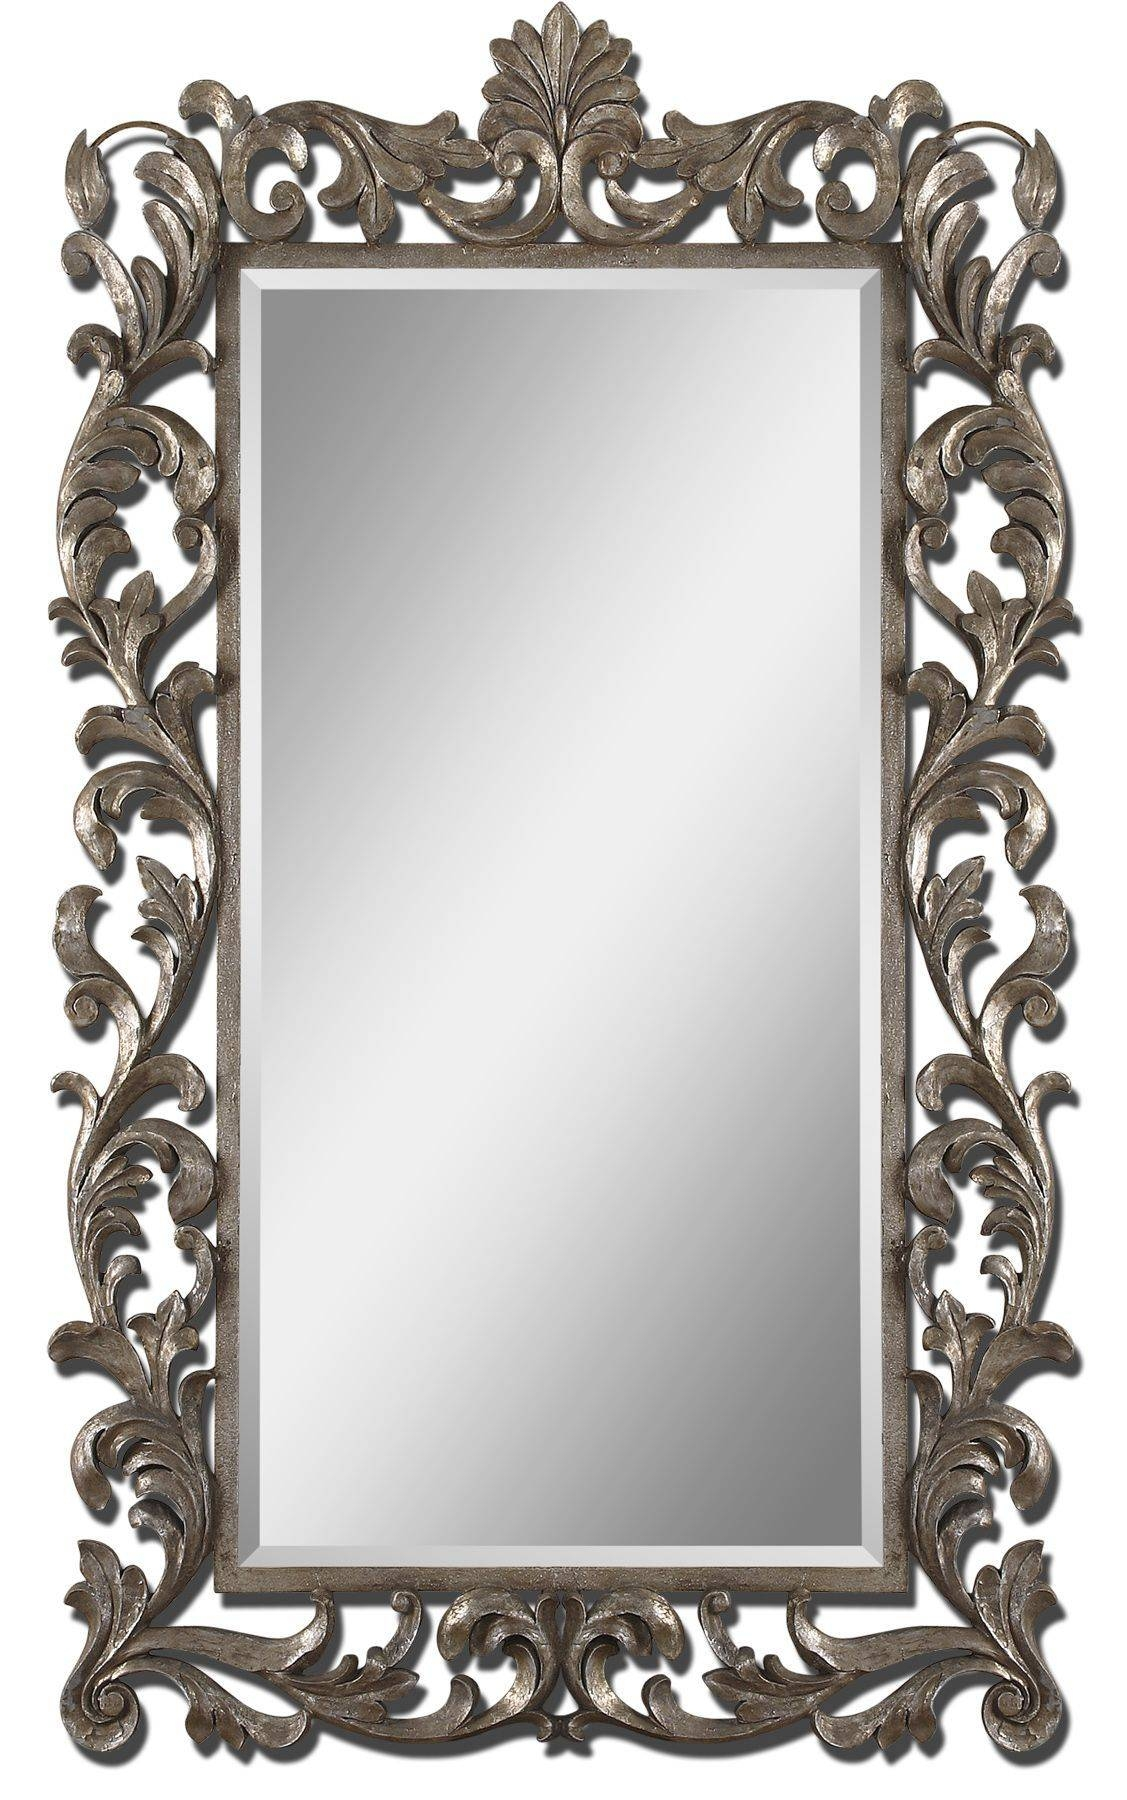 Uttermost Molise Large Silver Mirror 12824 for Large Ornate Silver Mirrors (Image 25 of 25)